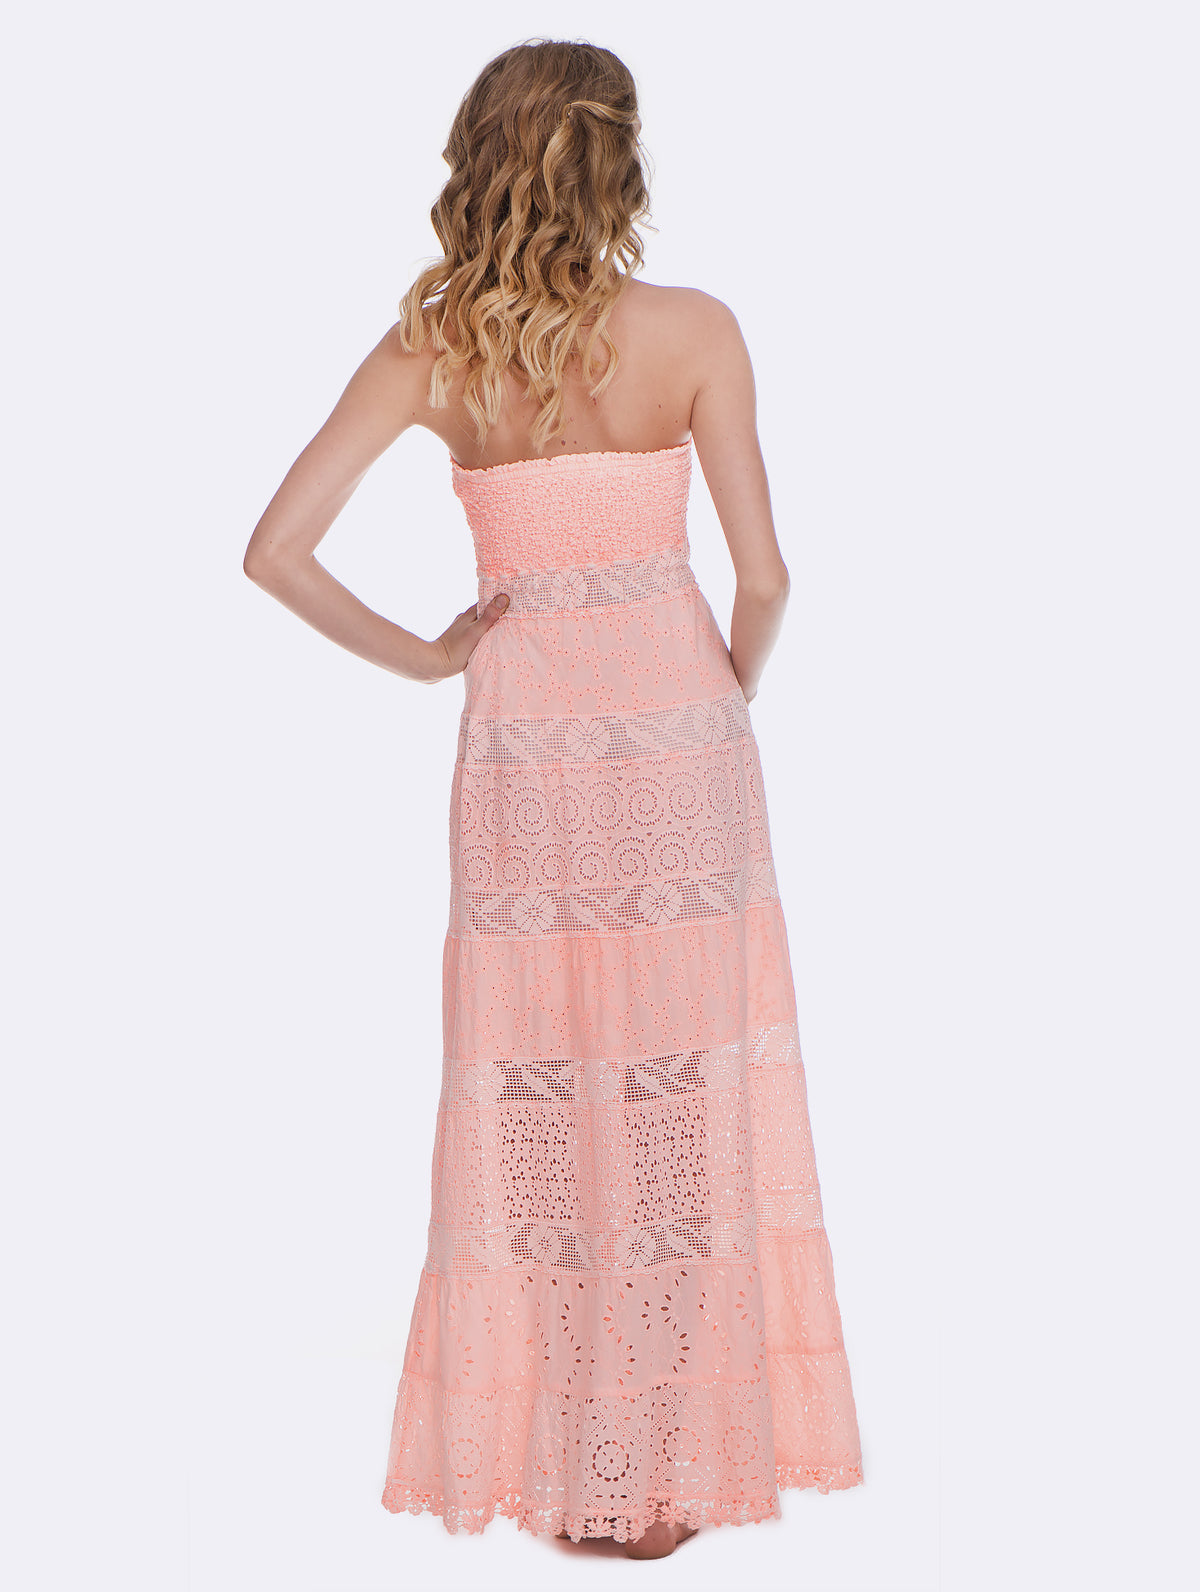 Temptation Positano Peach Dublino Dress